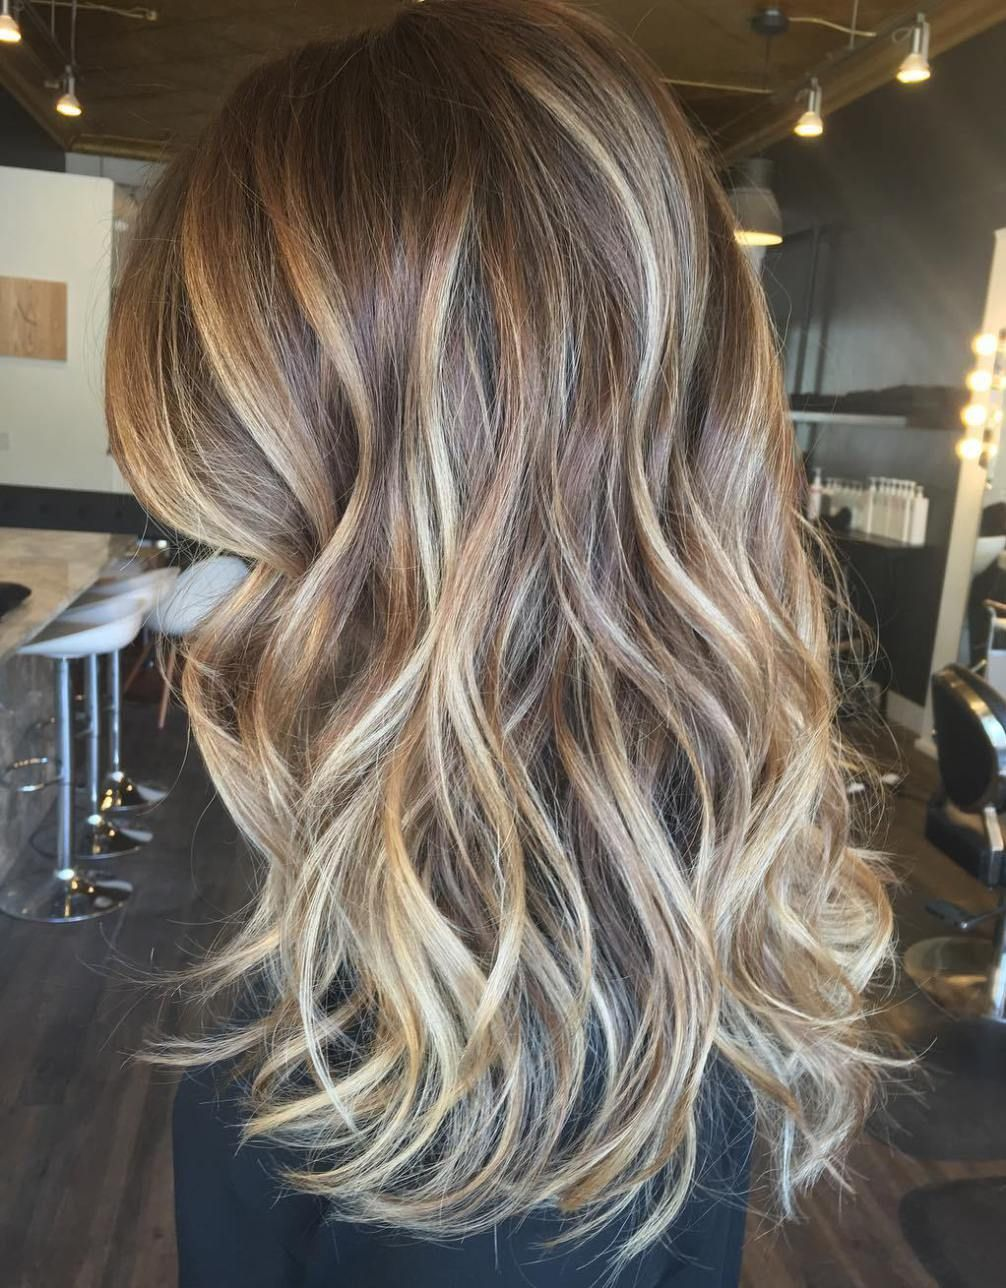 70 Flattering Balayage Hair Color Ideas for 2018 | Medium ...